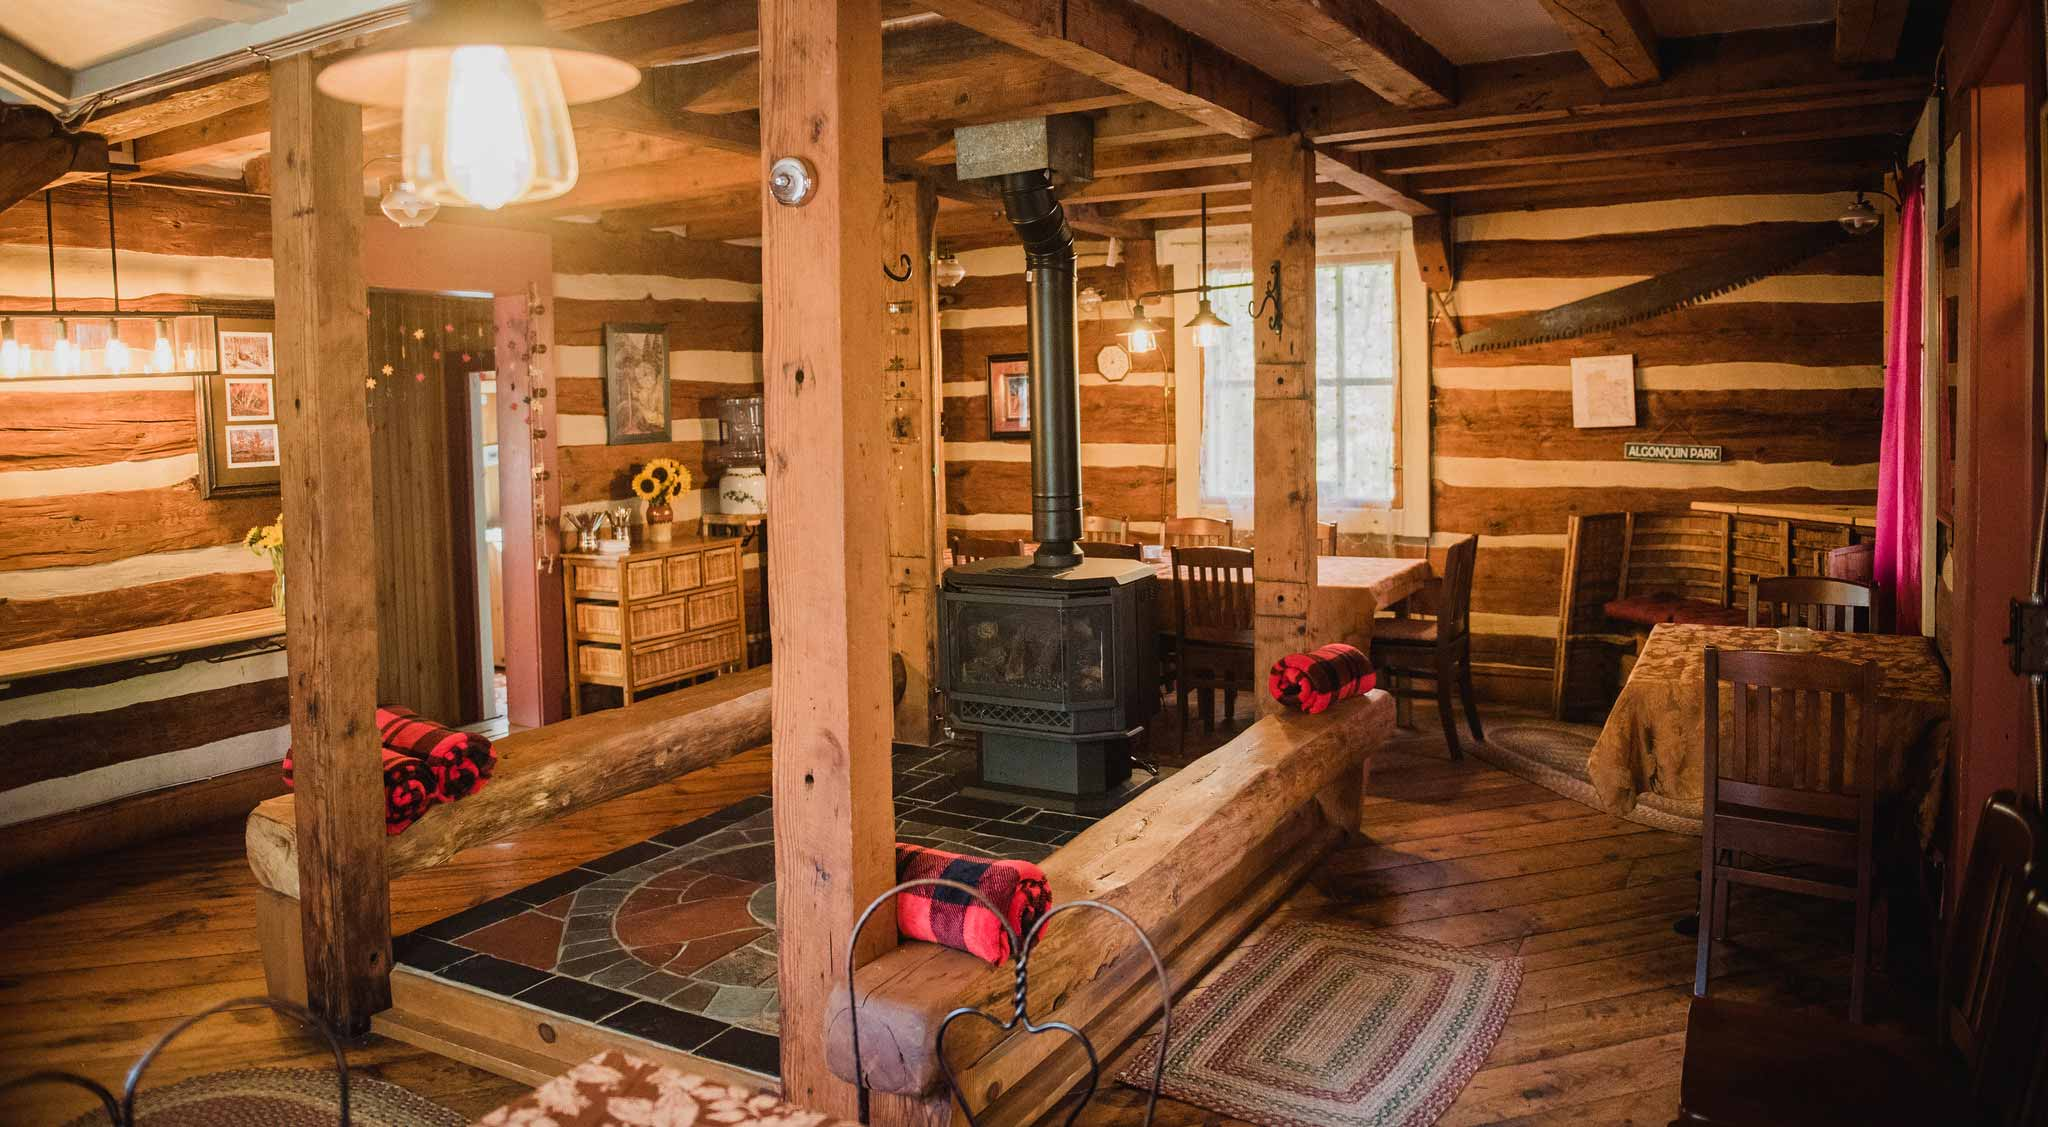 Cozy log cabin interior with a fireplace